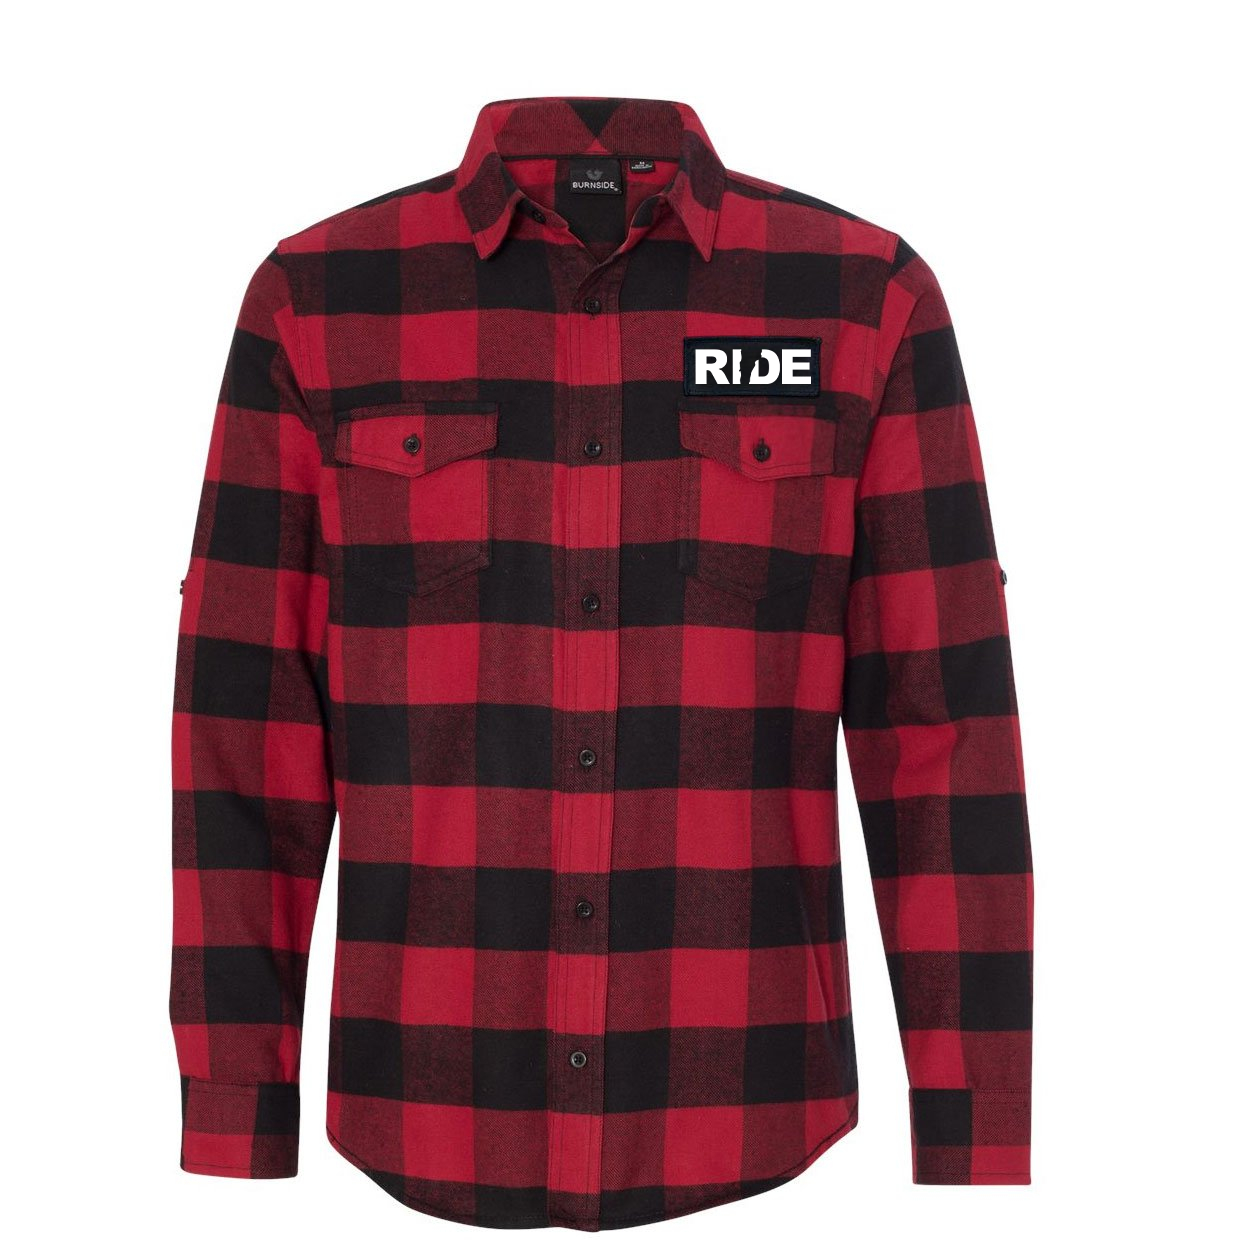 Ride Vermont Classic Unisex Long Sleeve Woven Patch Flannel Shirt Red/Black Buffalo (White Logo)